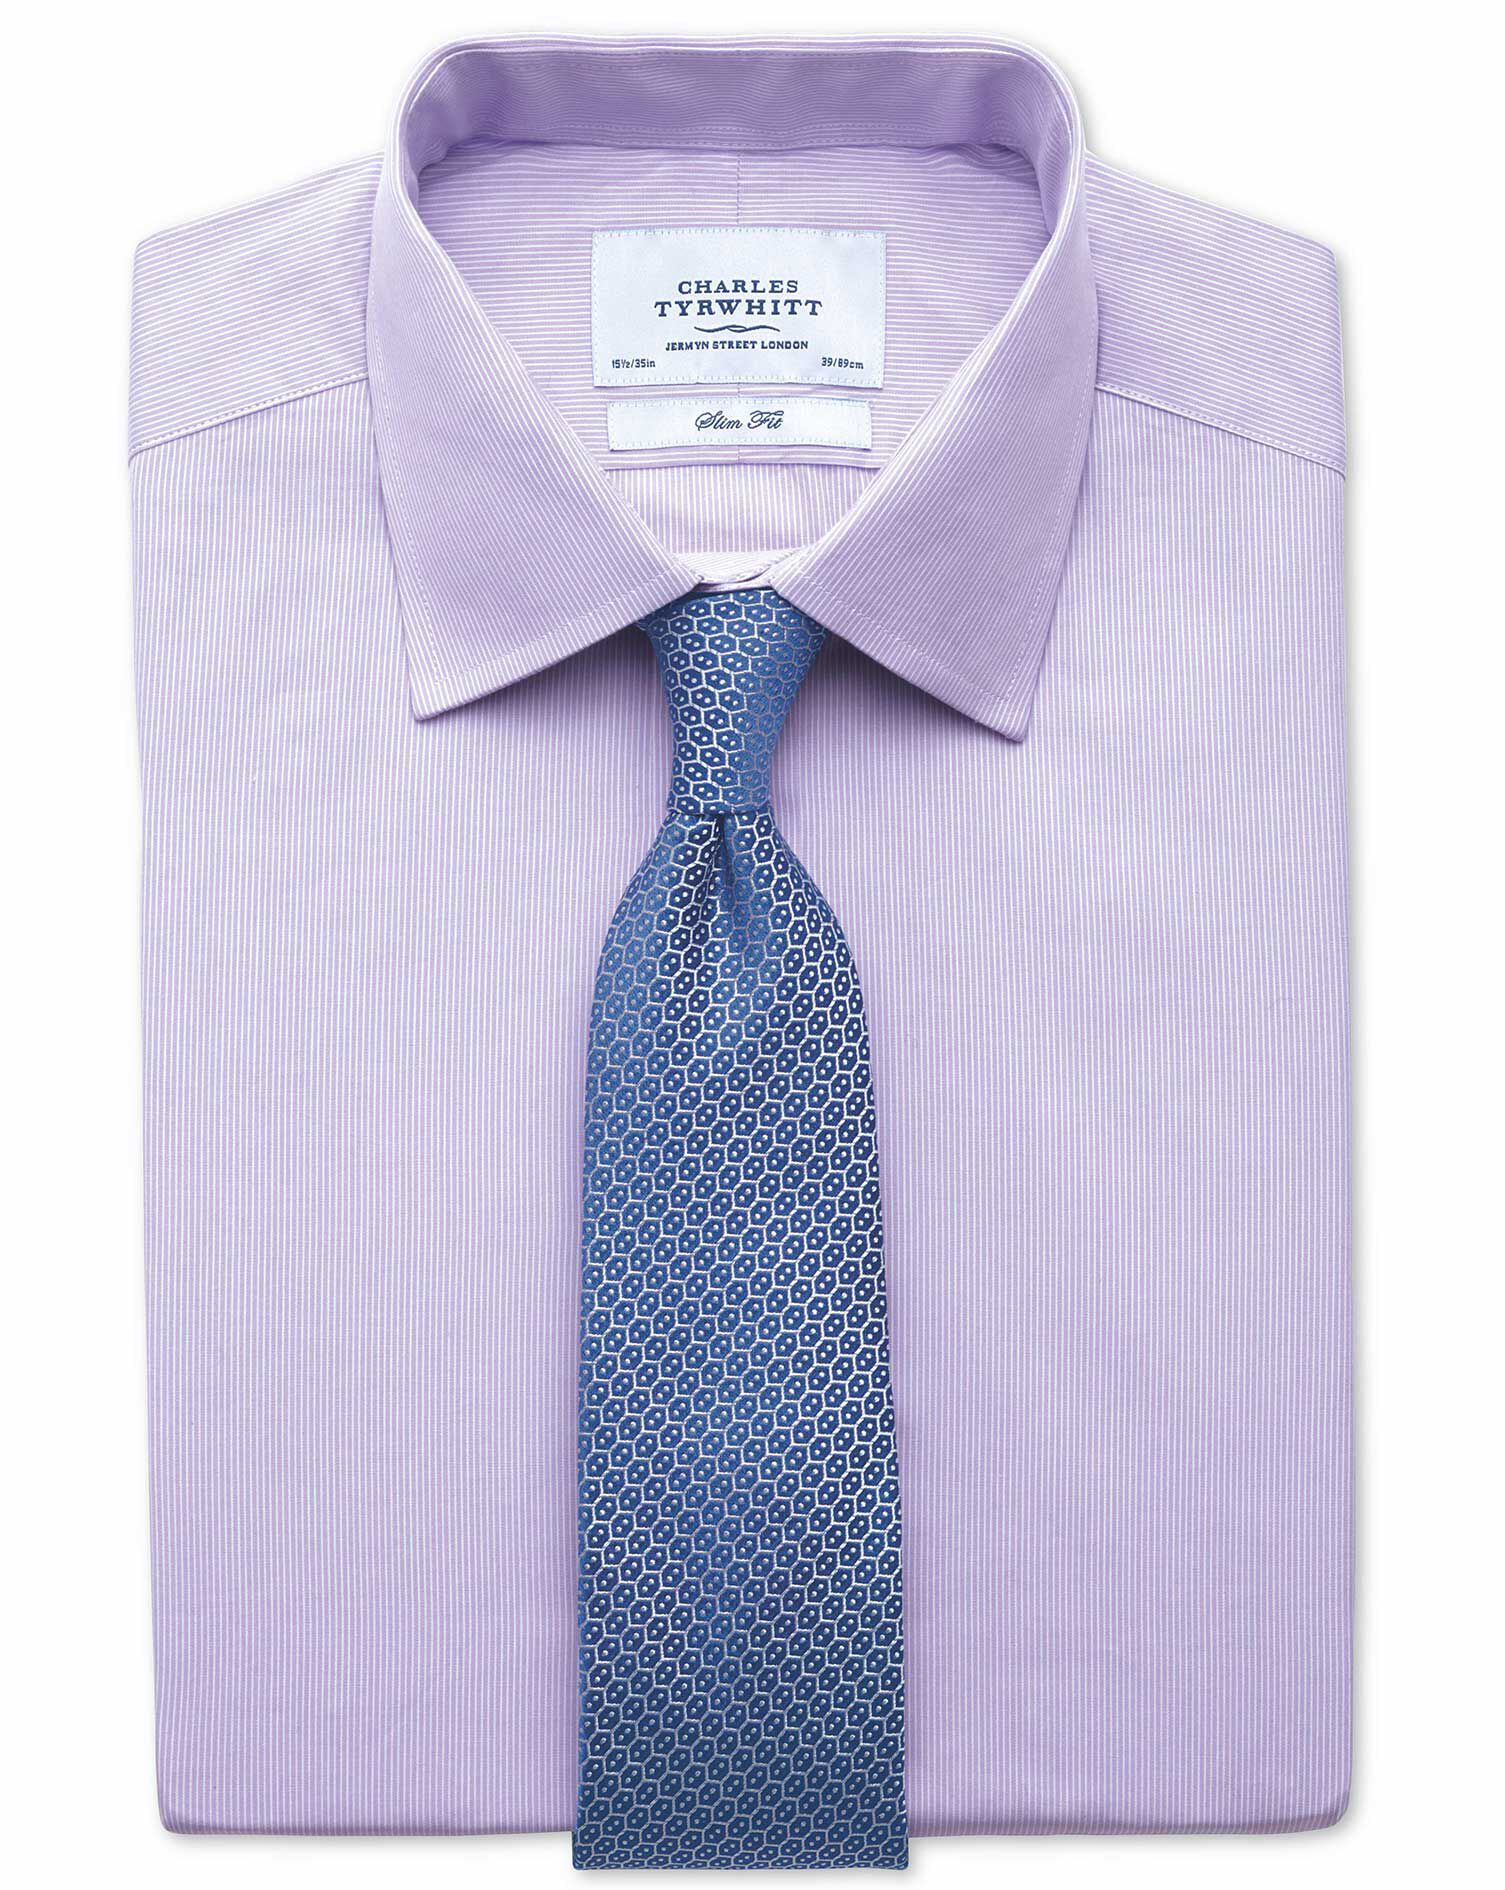 Extra Slim Fit Fine Stripe Lilac Cotton Formal Shirt Double Cuff Size 15.5/36 by Charles Tyrwhitt